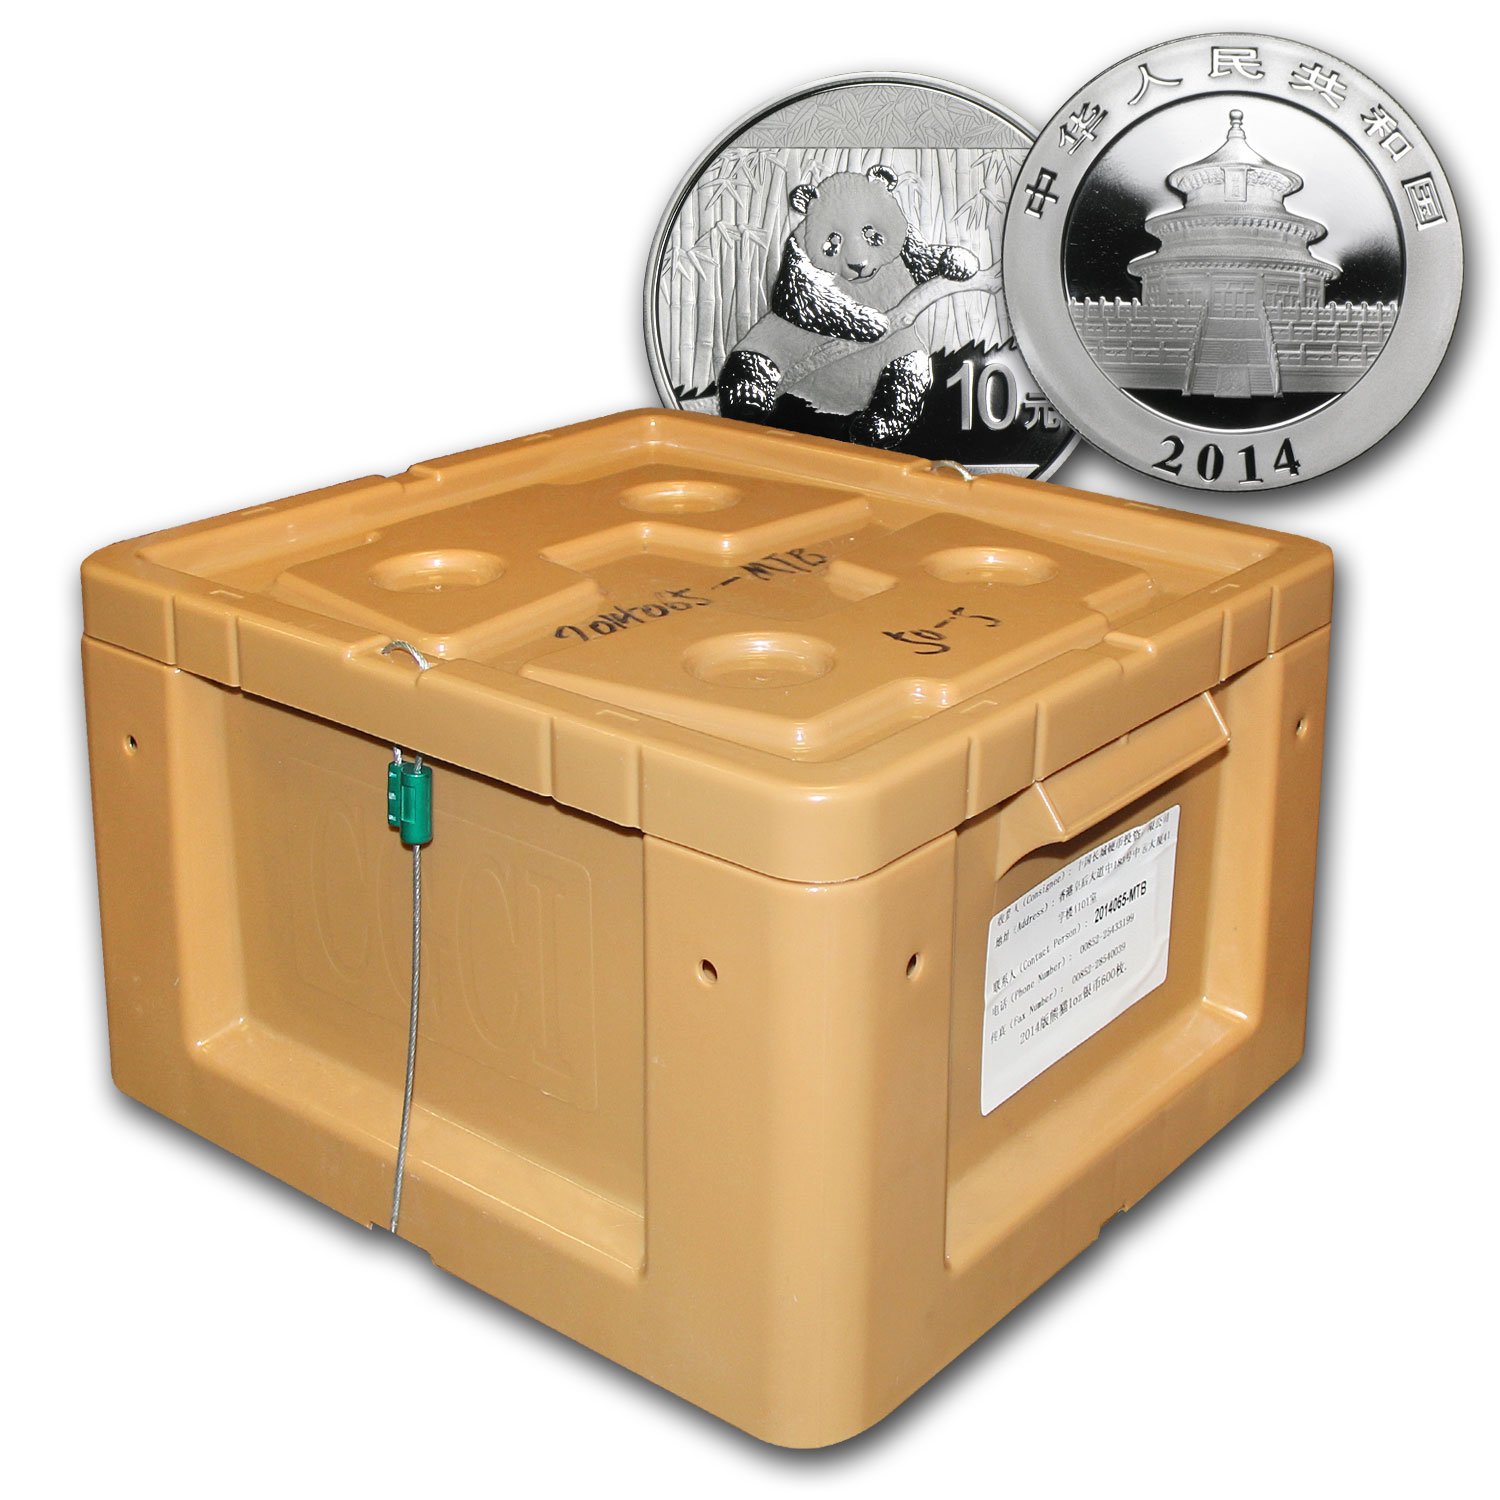 2014 1 oz Silver Chinese Panda 600-Coin Monster Box Sealed